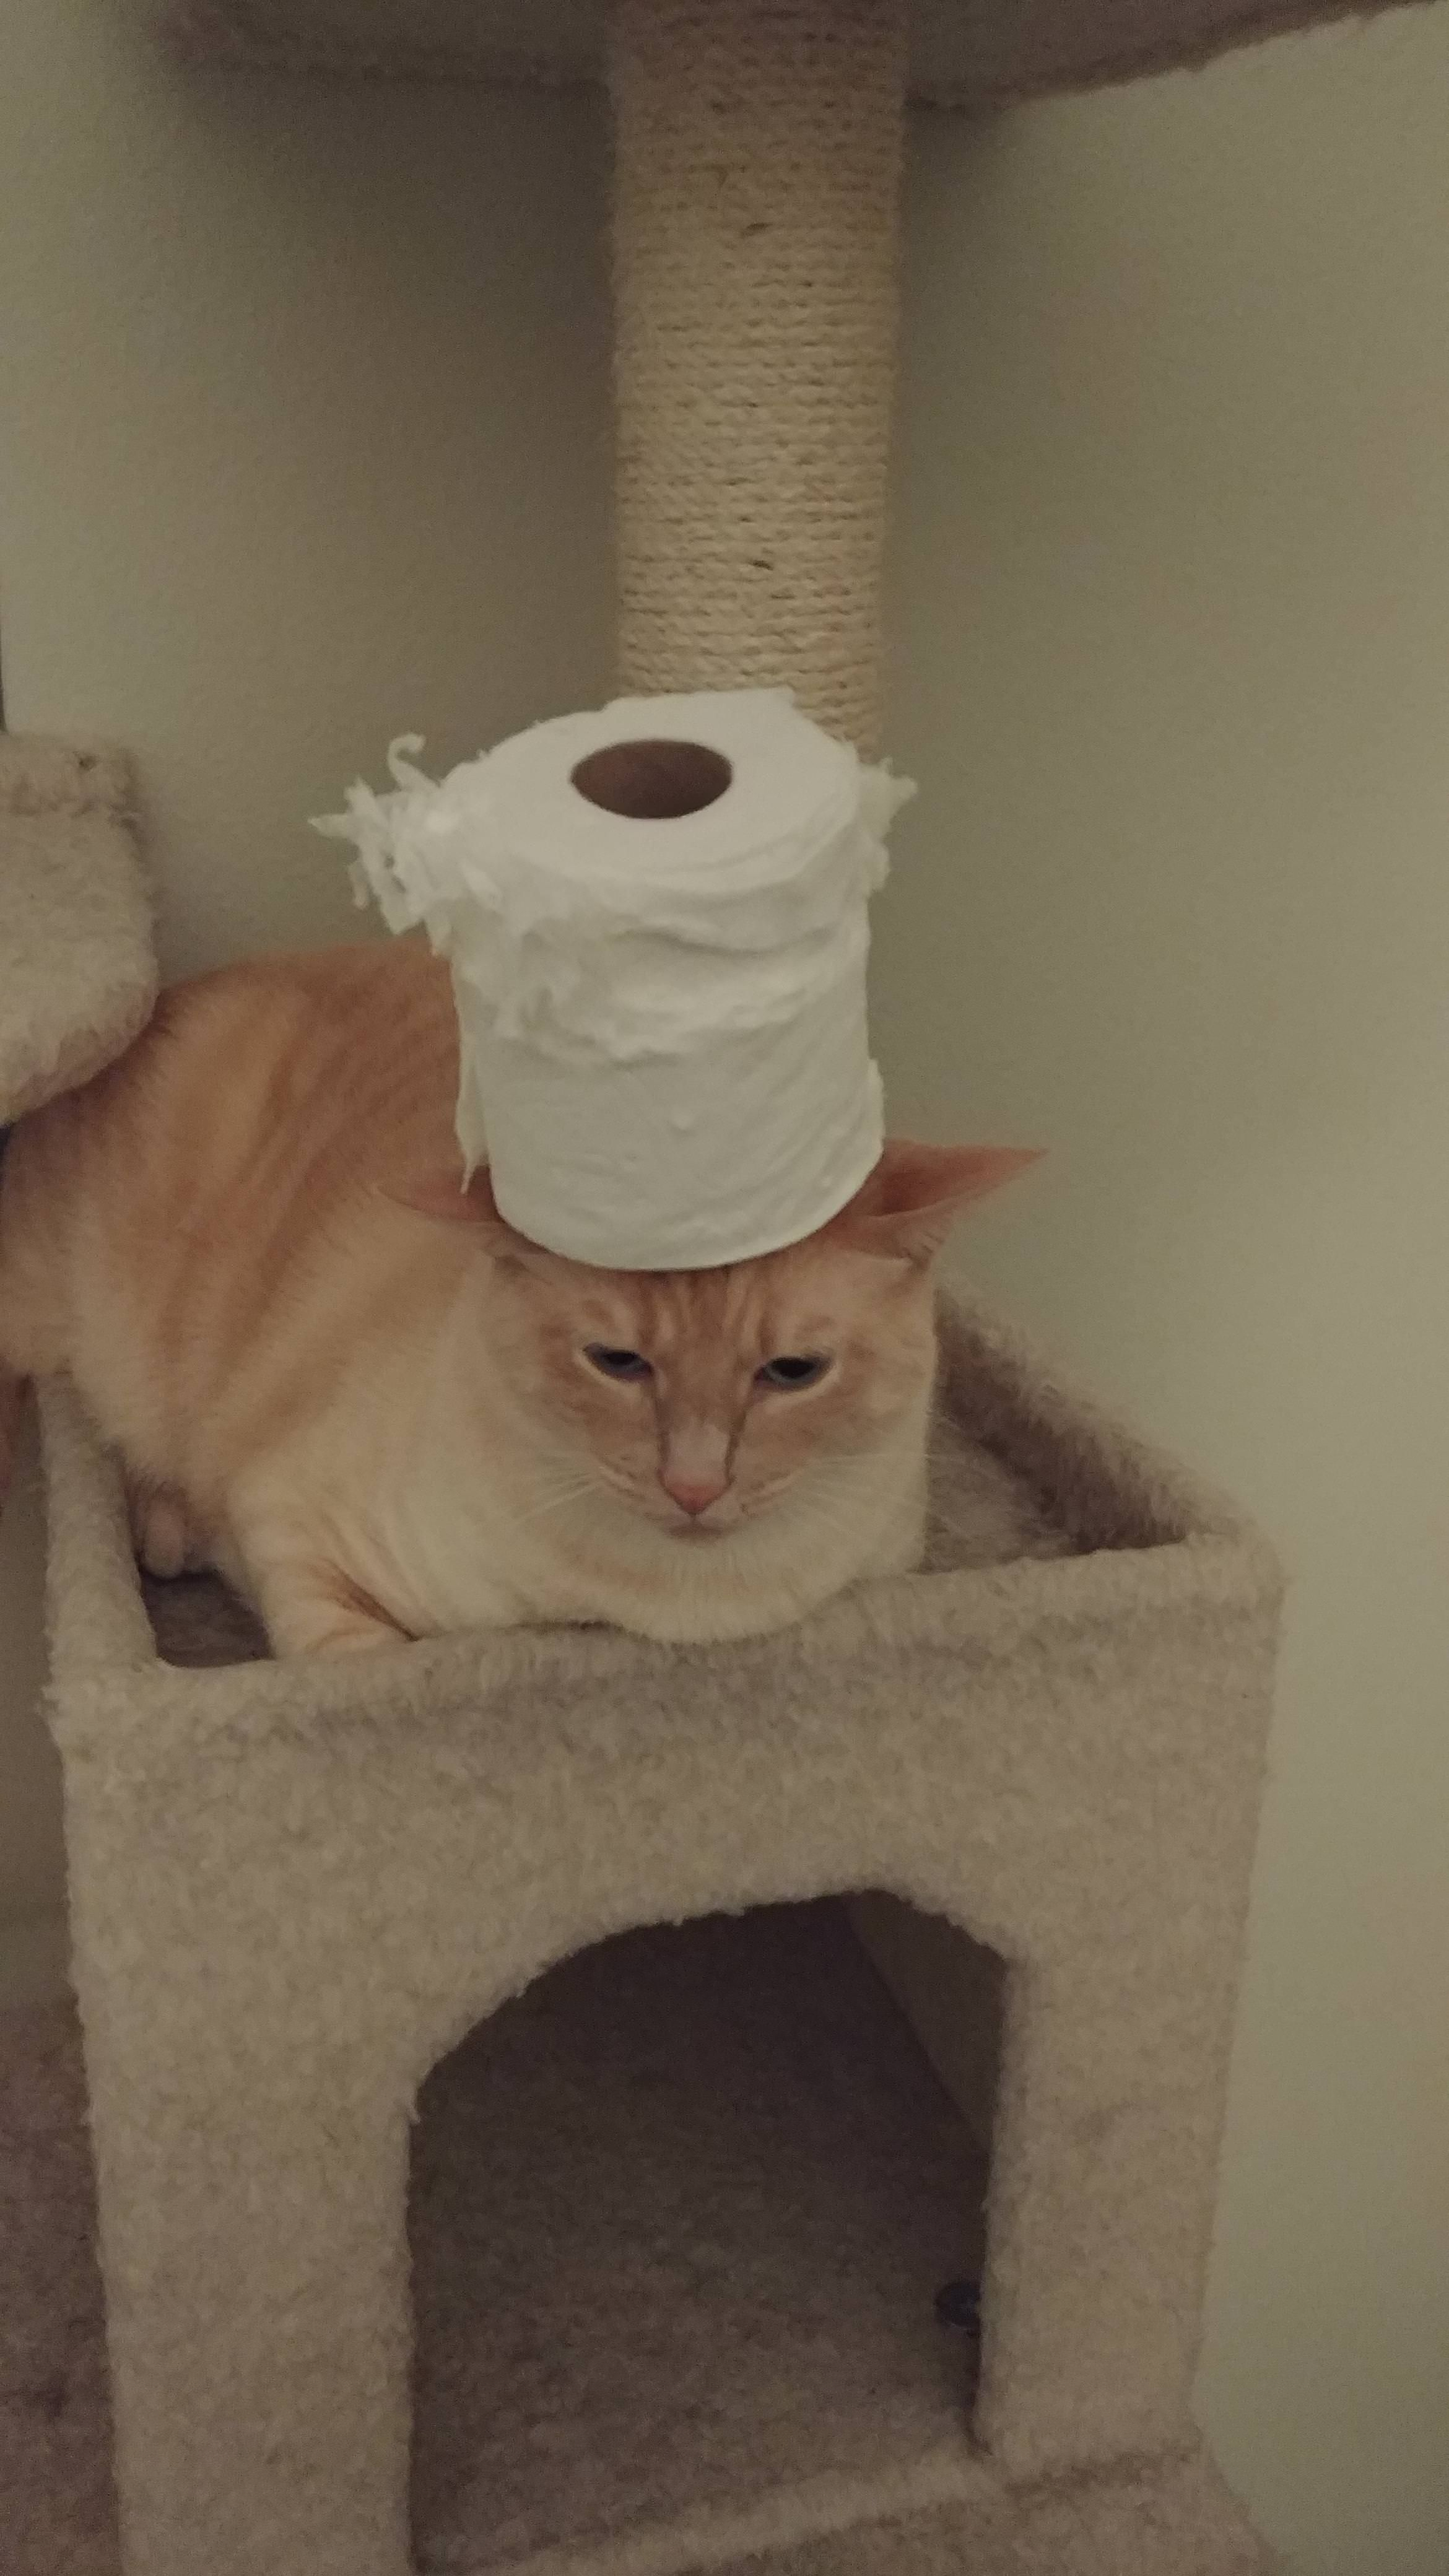 My Cat Decided To Eat Toilet Paper This Was His Punishment